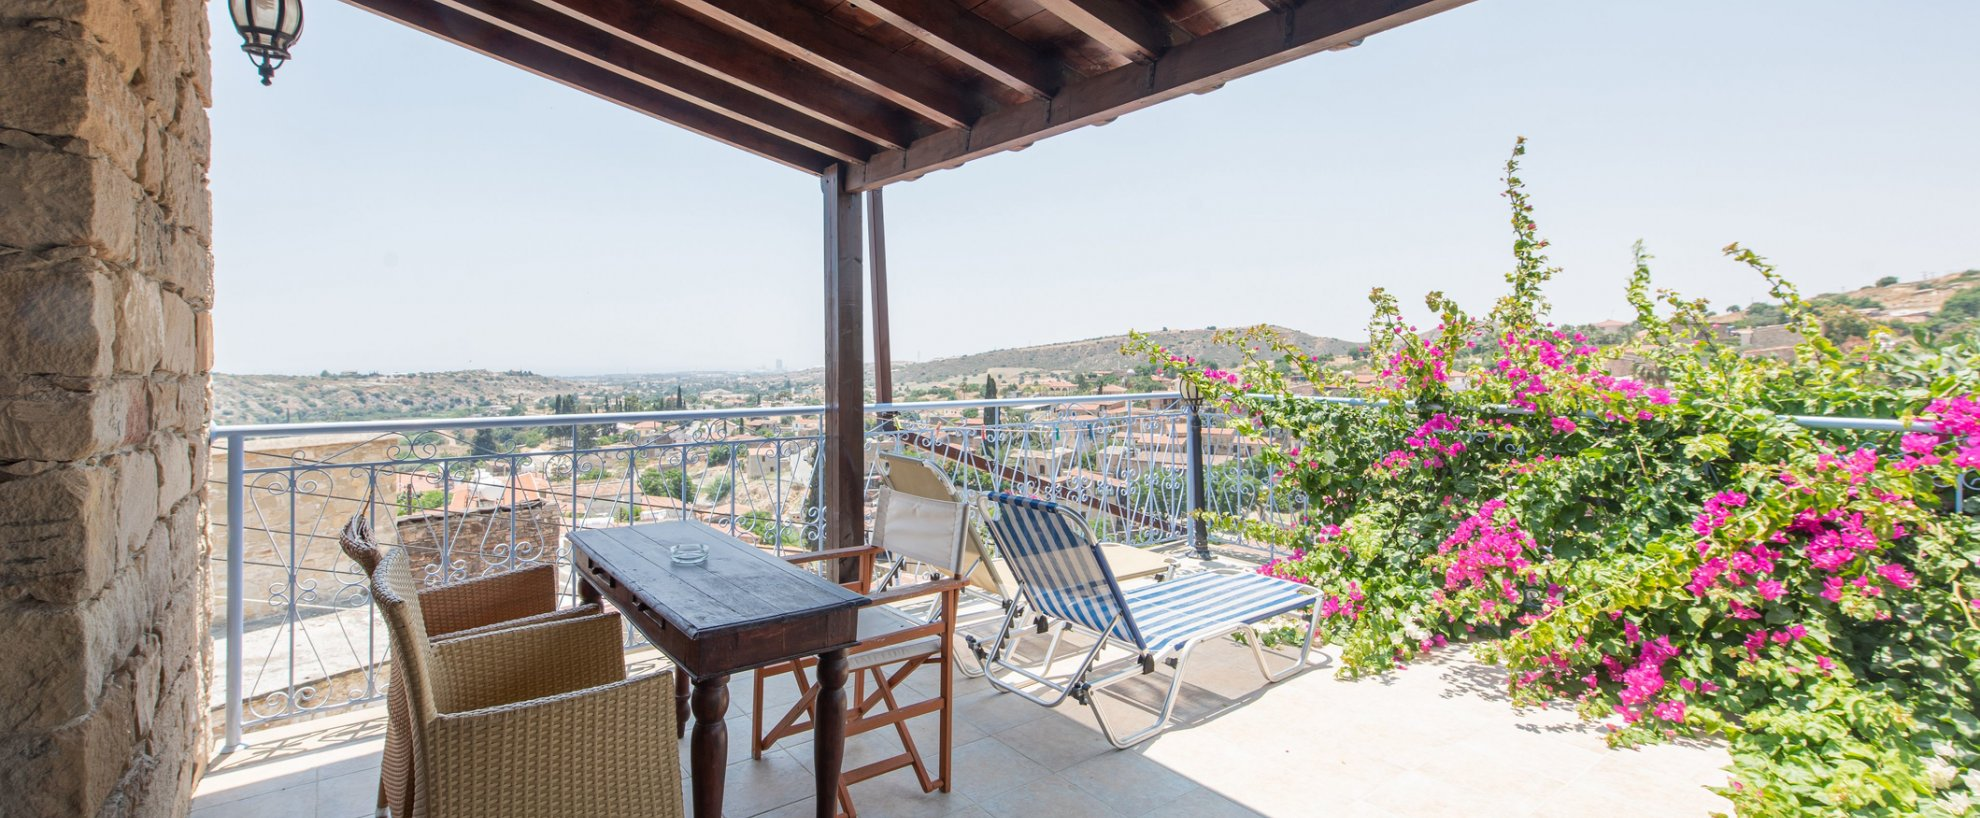 Zypern Tochni Cyprus Villages Yoga Urlaub Appartements Terrasse